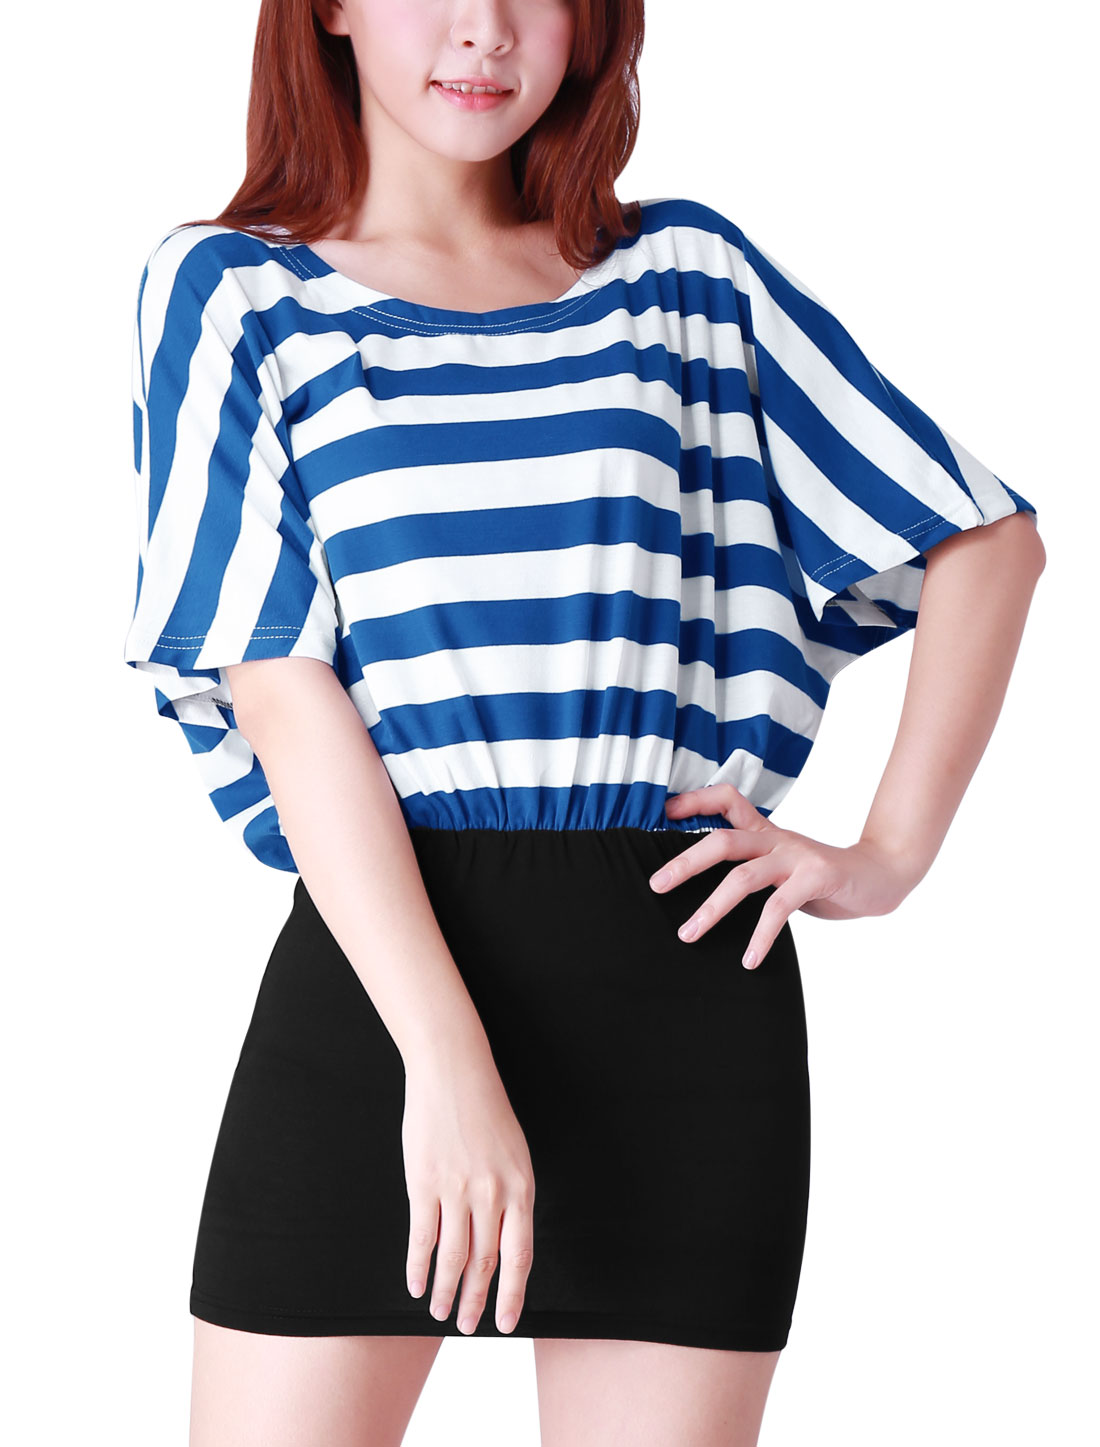 Woman Chic Dark Blue Striped Top Black Splice Casual Mini Dress M